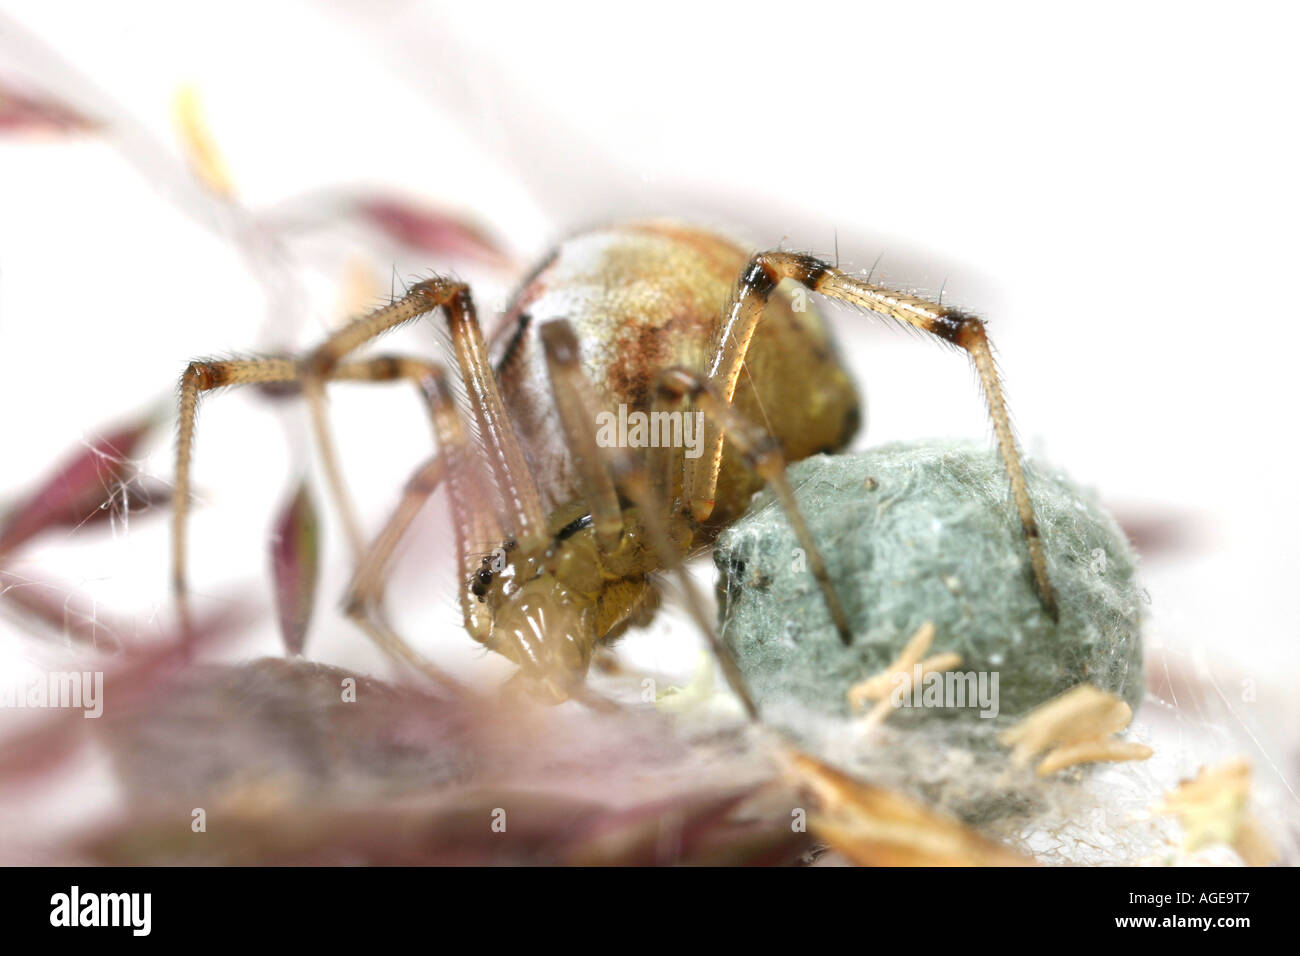 Theridion impressum spider with its egg sac - Stock Image